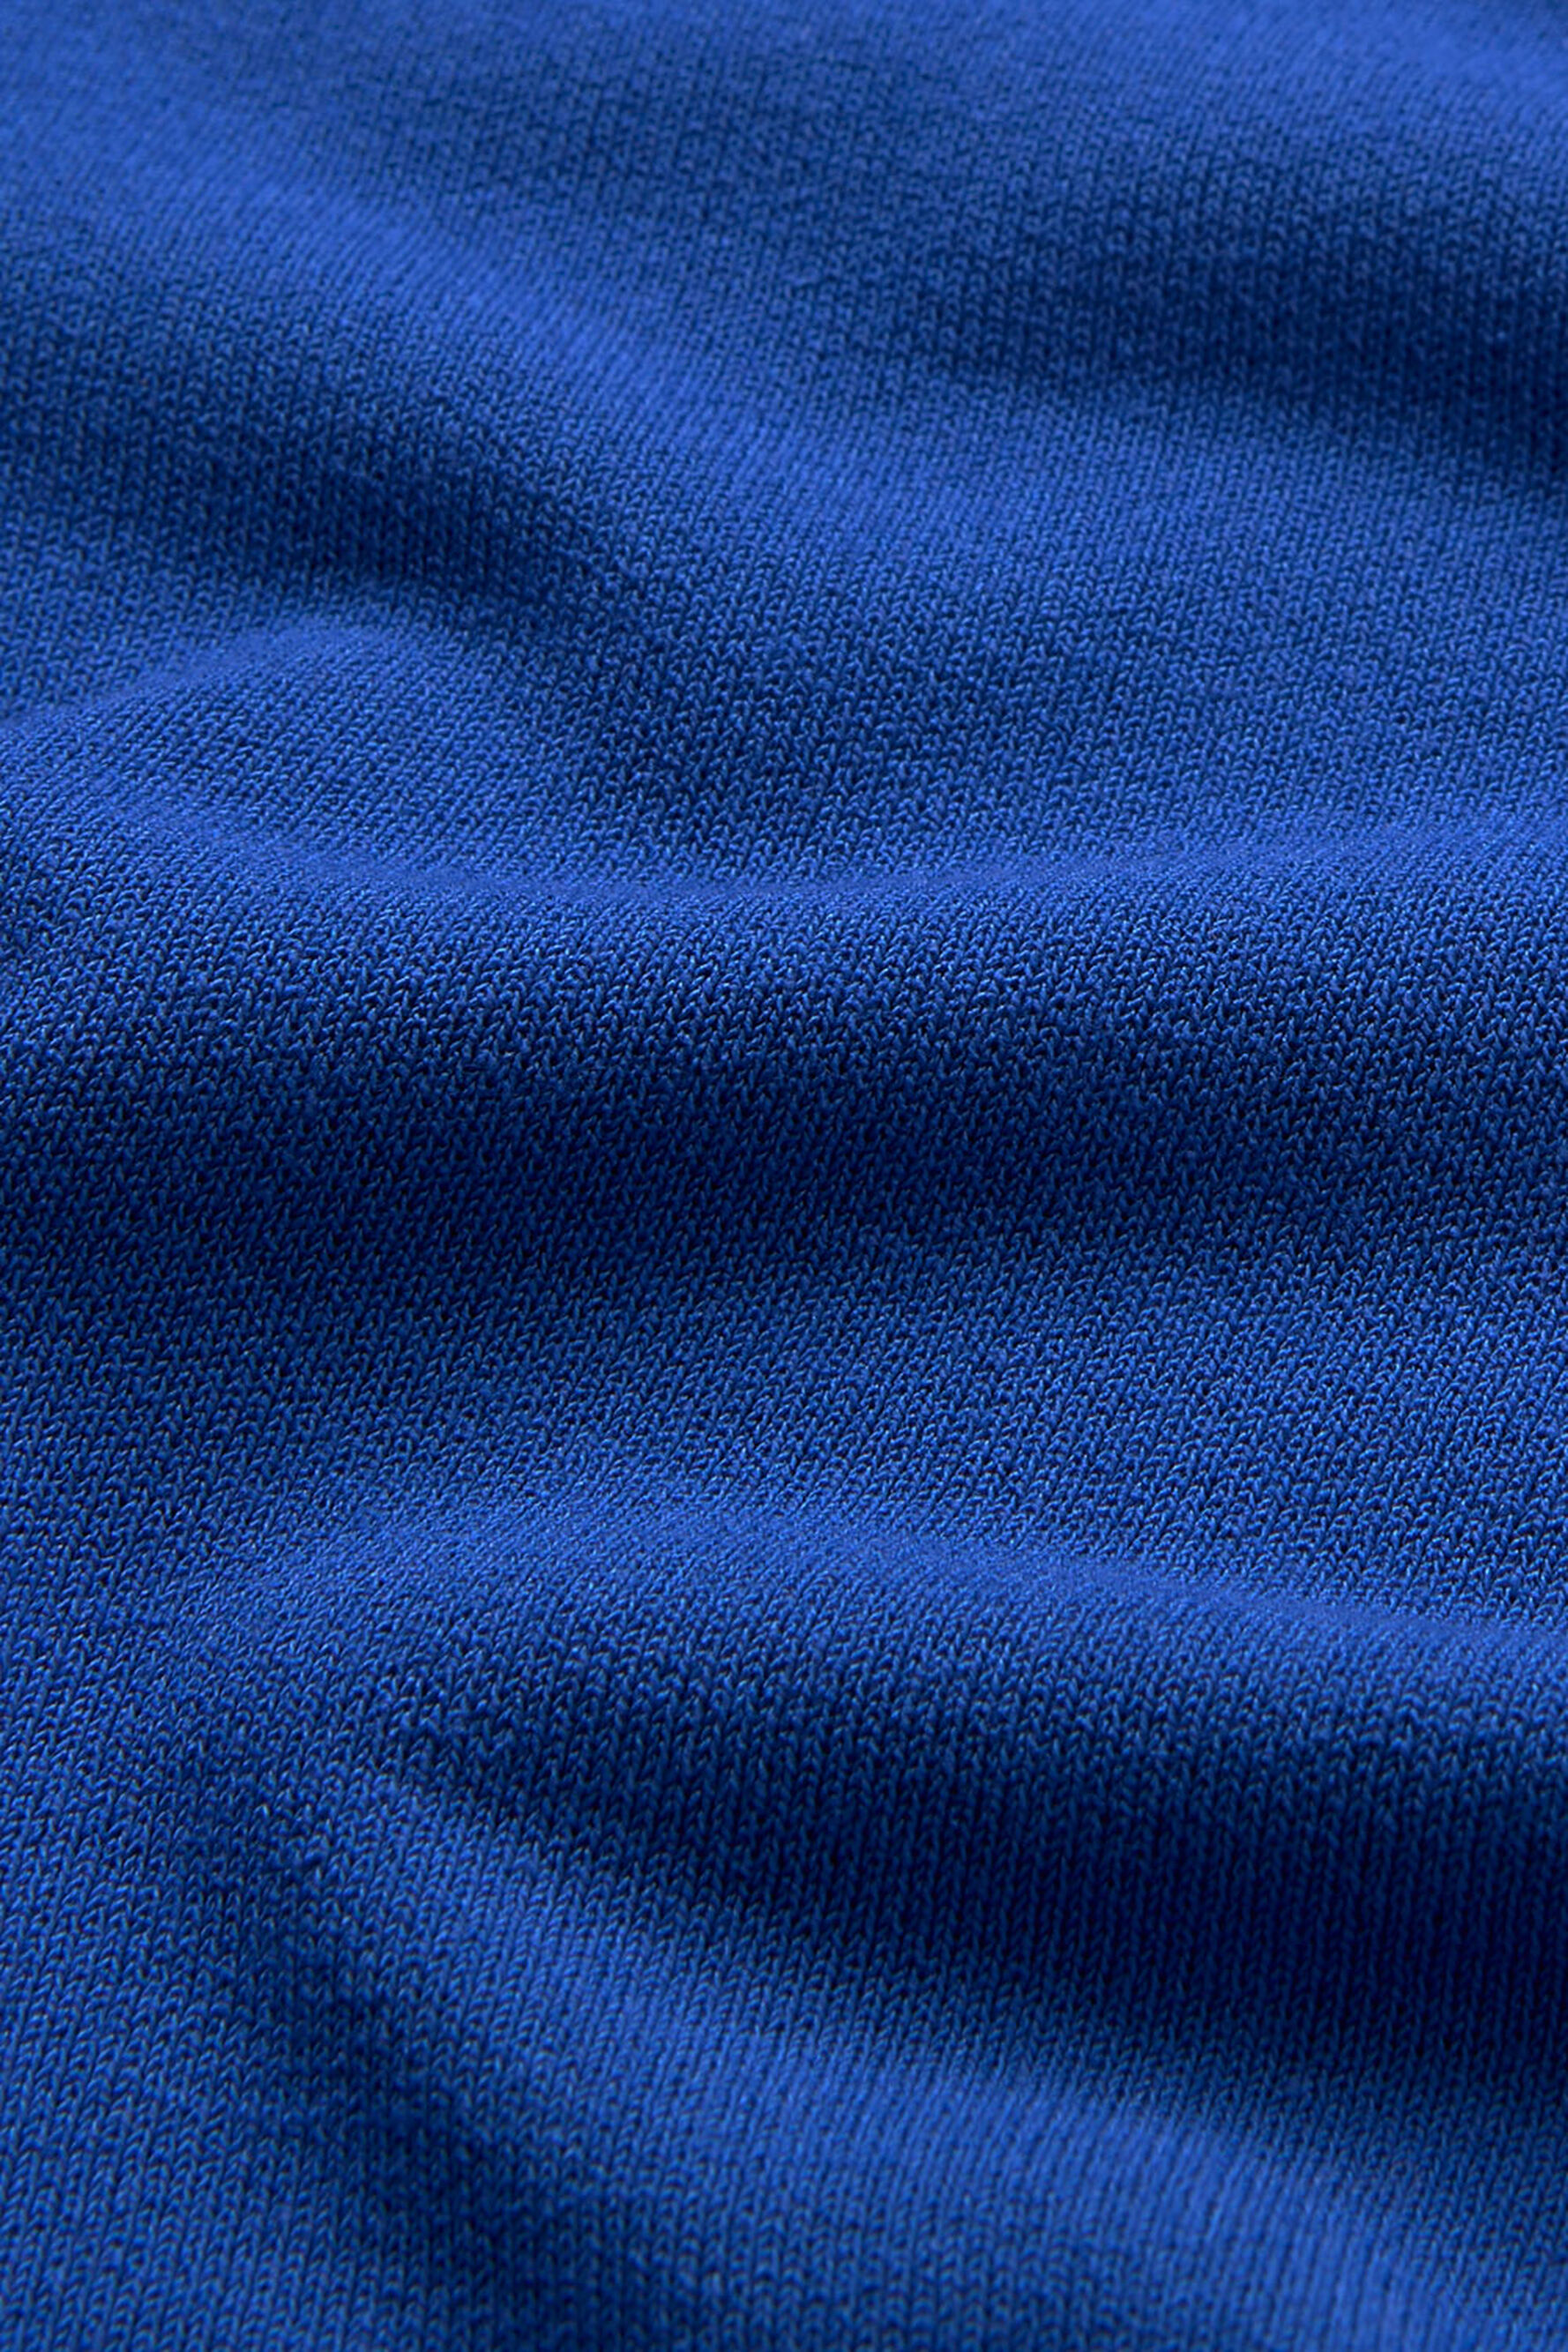 ELTA TOPP, ROYAL BLUE, hi-res